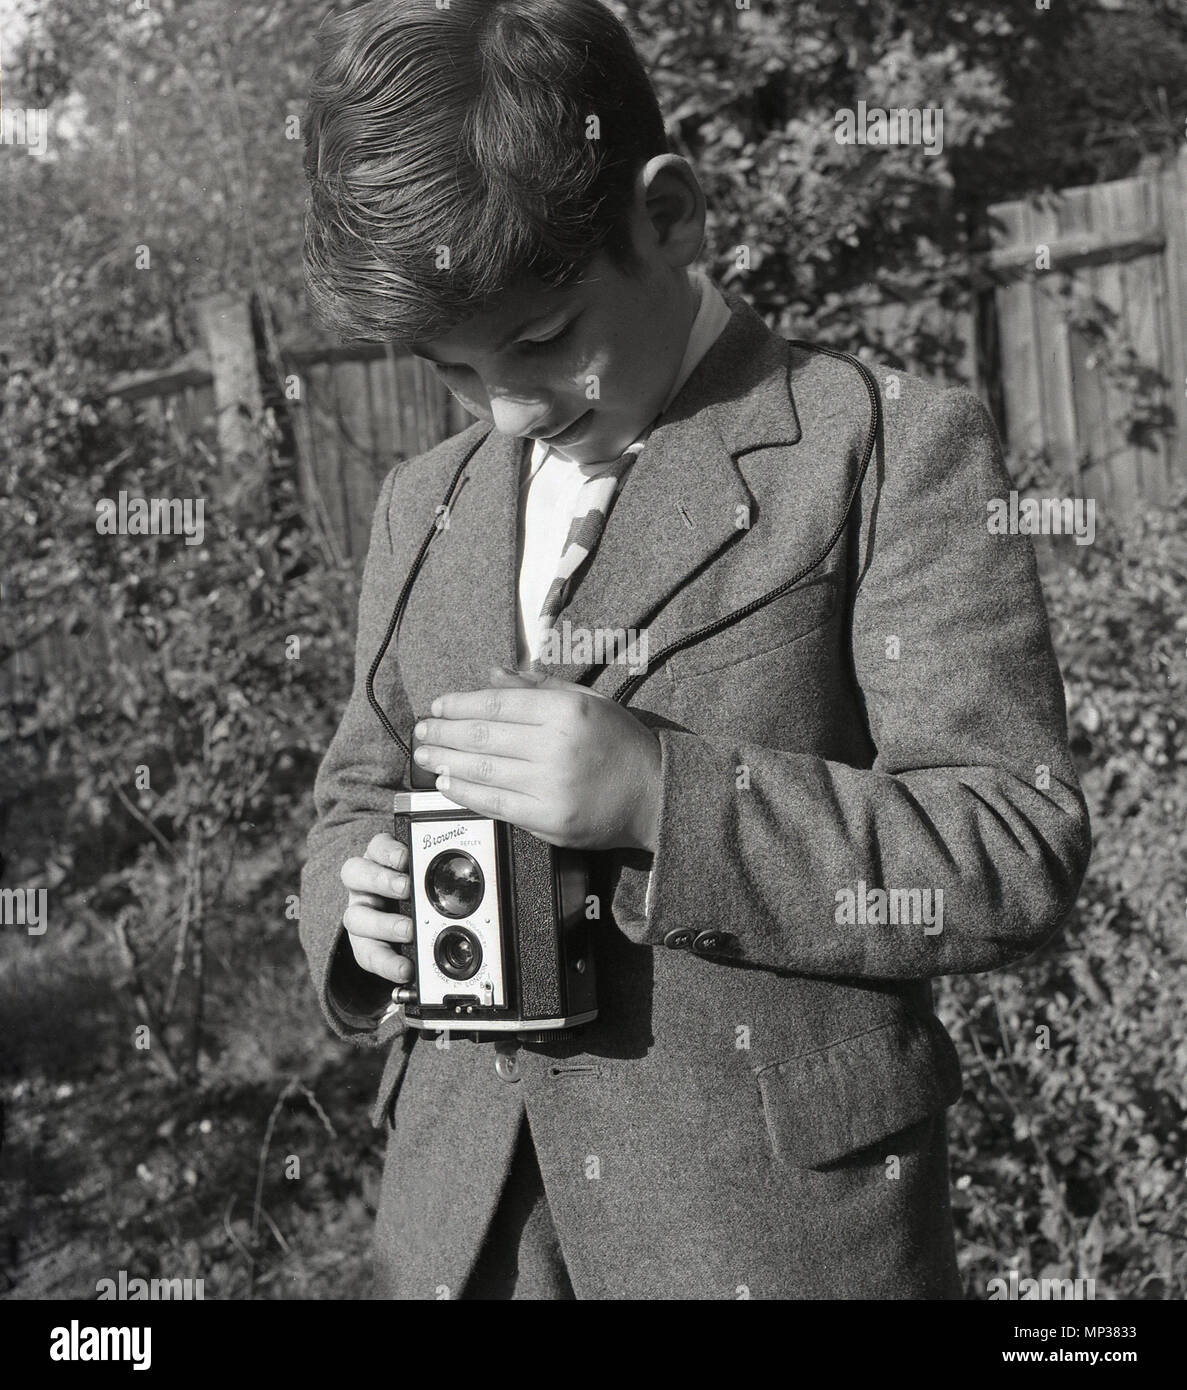 1950s, historical, teenage schoolboy outside in a garden using a Kodak 'Brownie' reflex photographic film camera. This camera was made in england by Kodak Ltd from 1946 to 1960. As can be seen, to use it, one looked down at the viewfinder and held the camera at waist level. - Stock Image